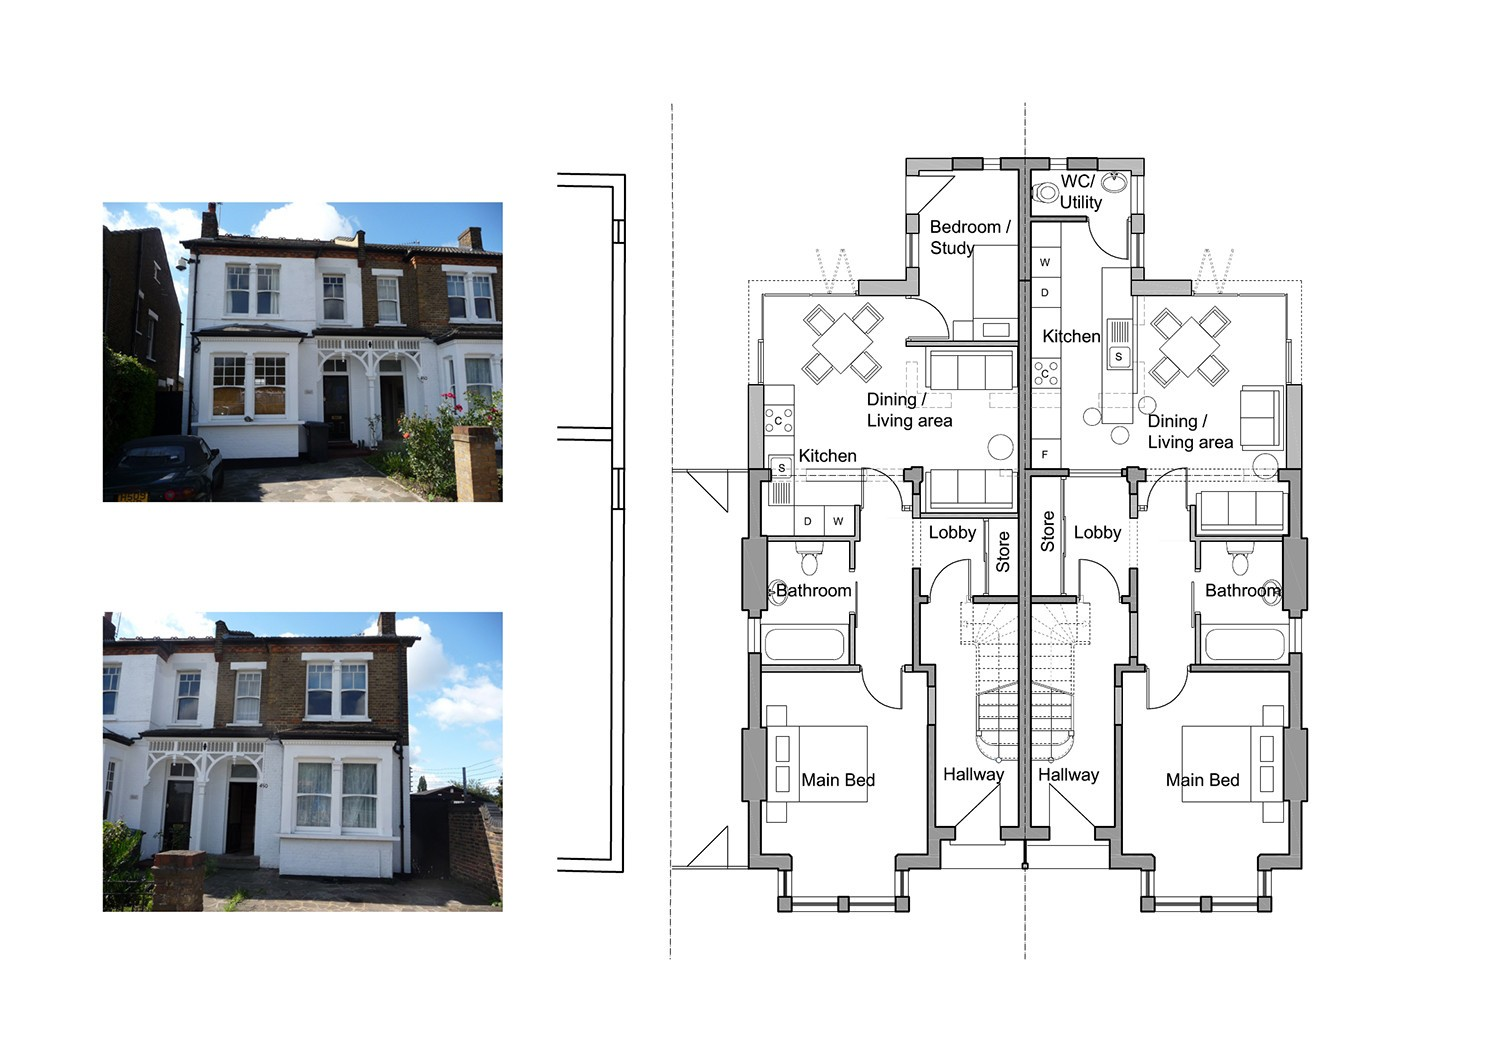 Design and Build London - Building Contractor Plans